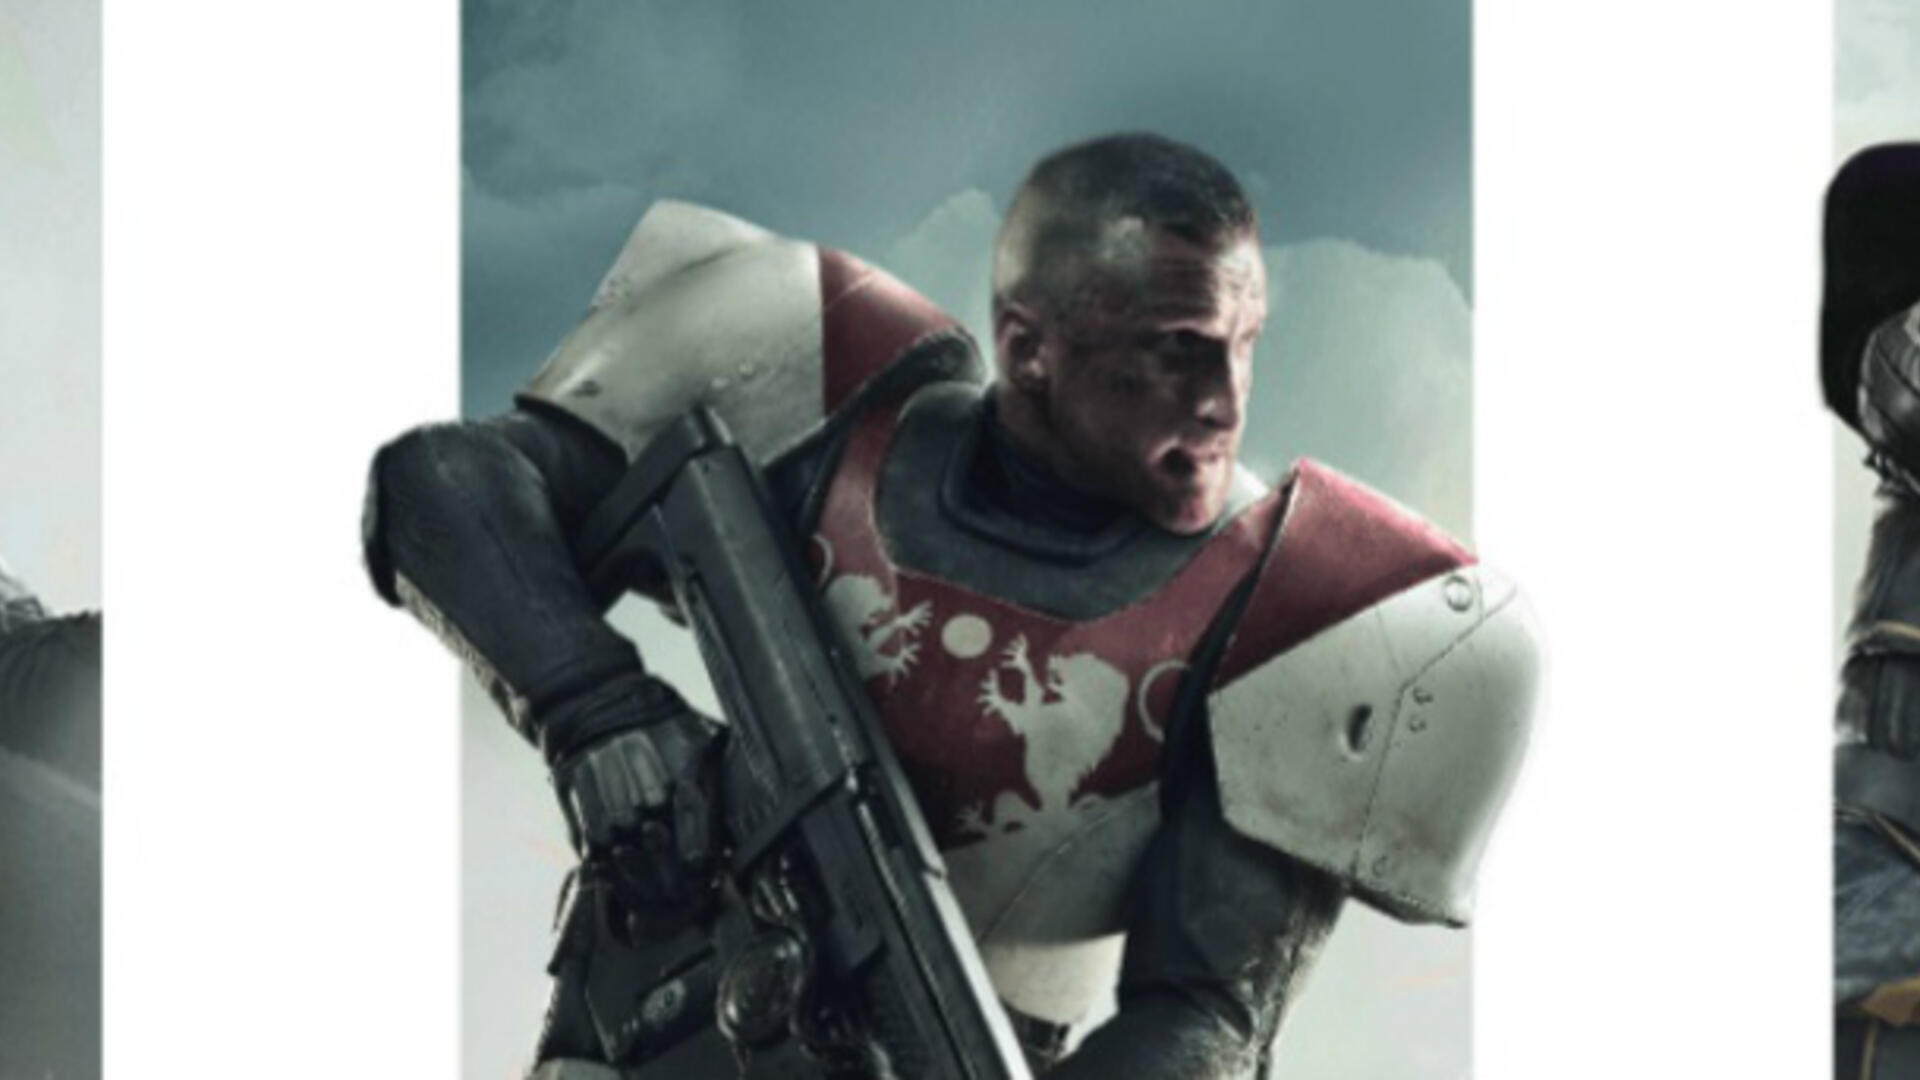 Destiny 2 Trailer and Website Confirms September 8 Release Date and PC Version